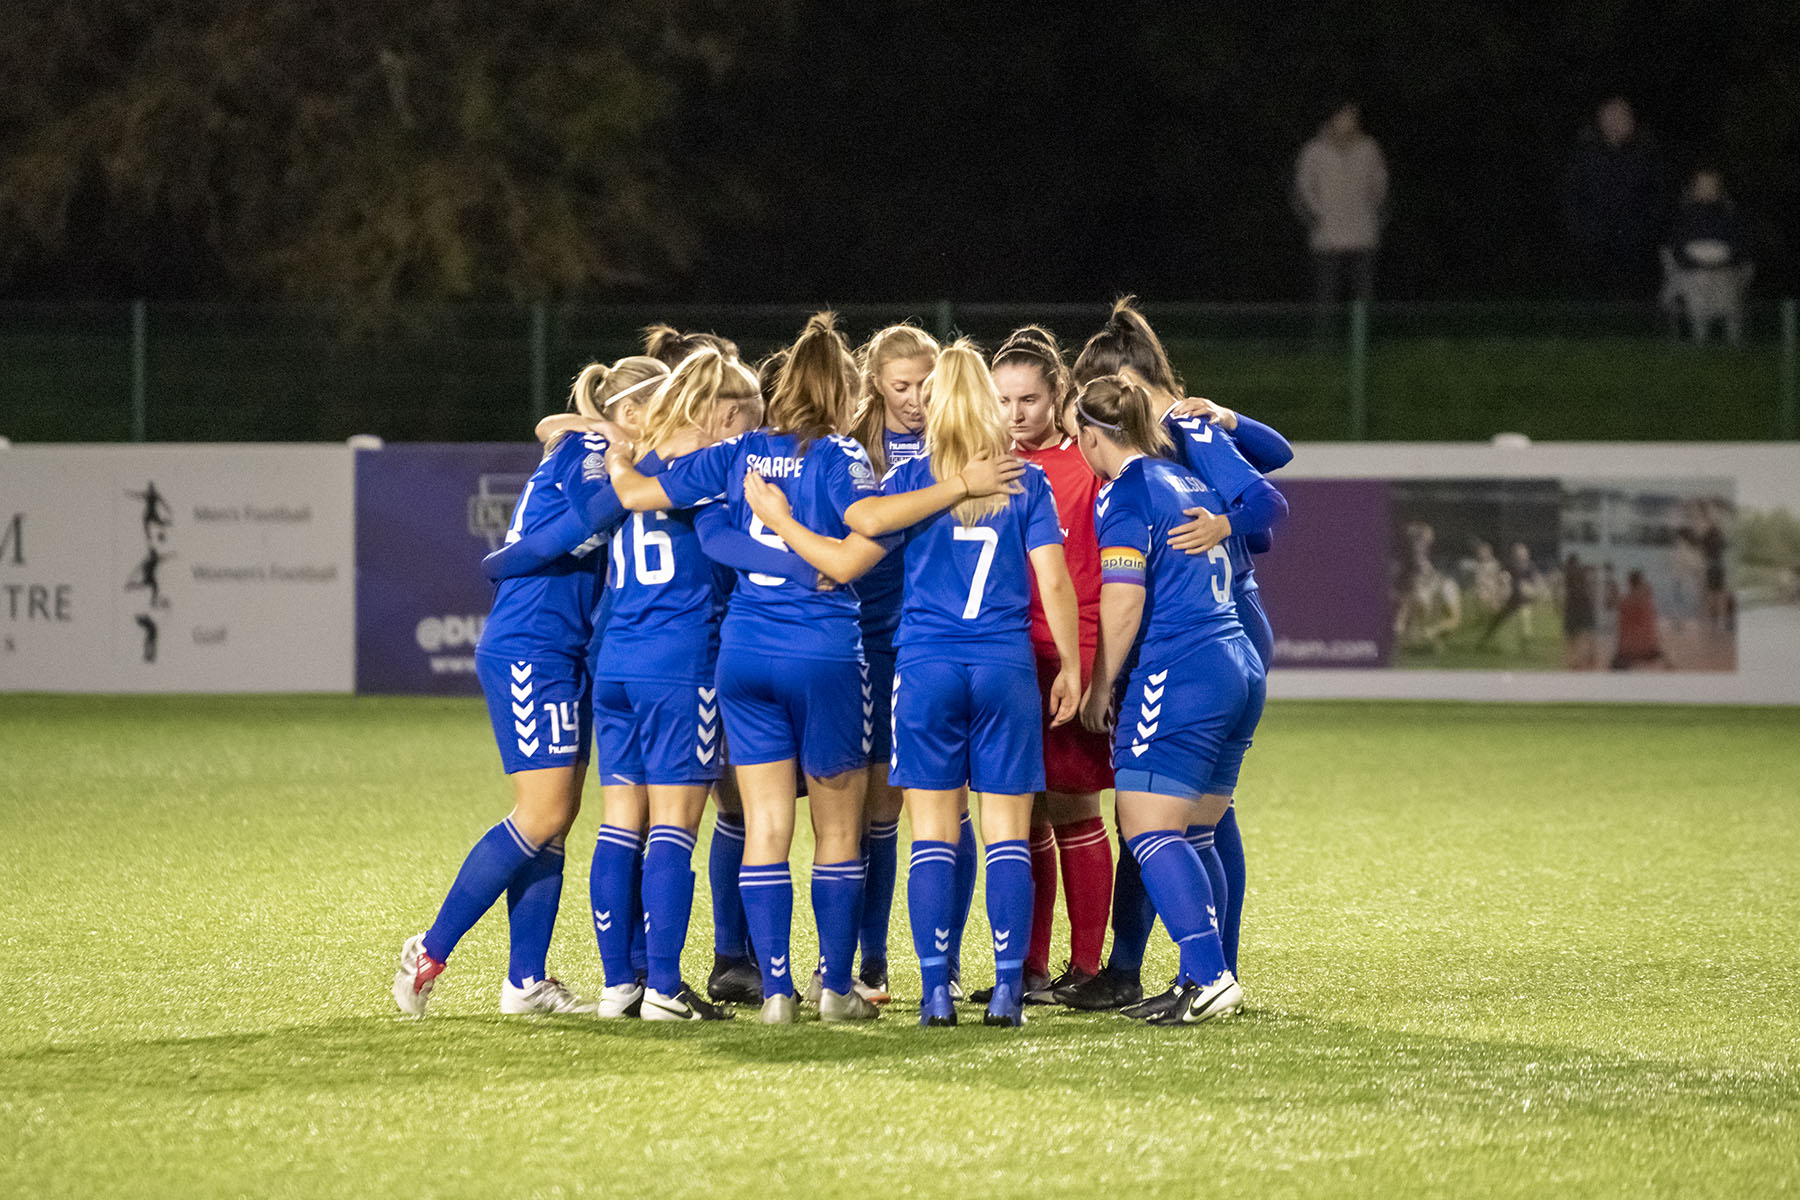 photos from durham wfc vs coventry utd in the continental cup oct 2020. result 5-2